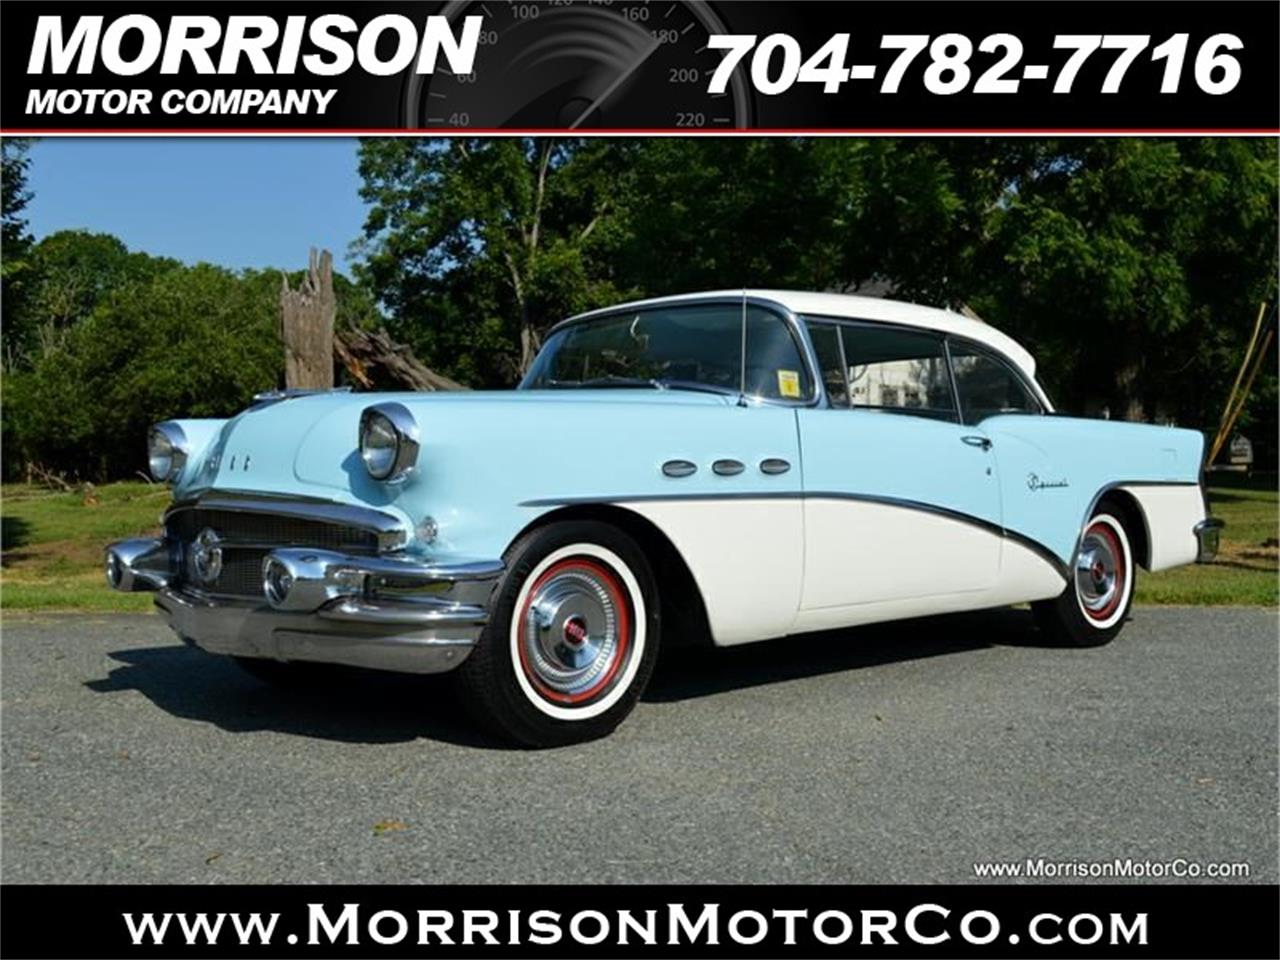 Large Picture of Classic '56 Special Riviera - $22,900.00 Offered by Morrison Motor Company - M8P8